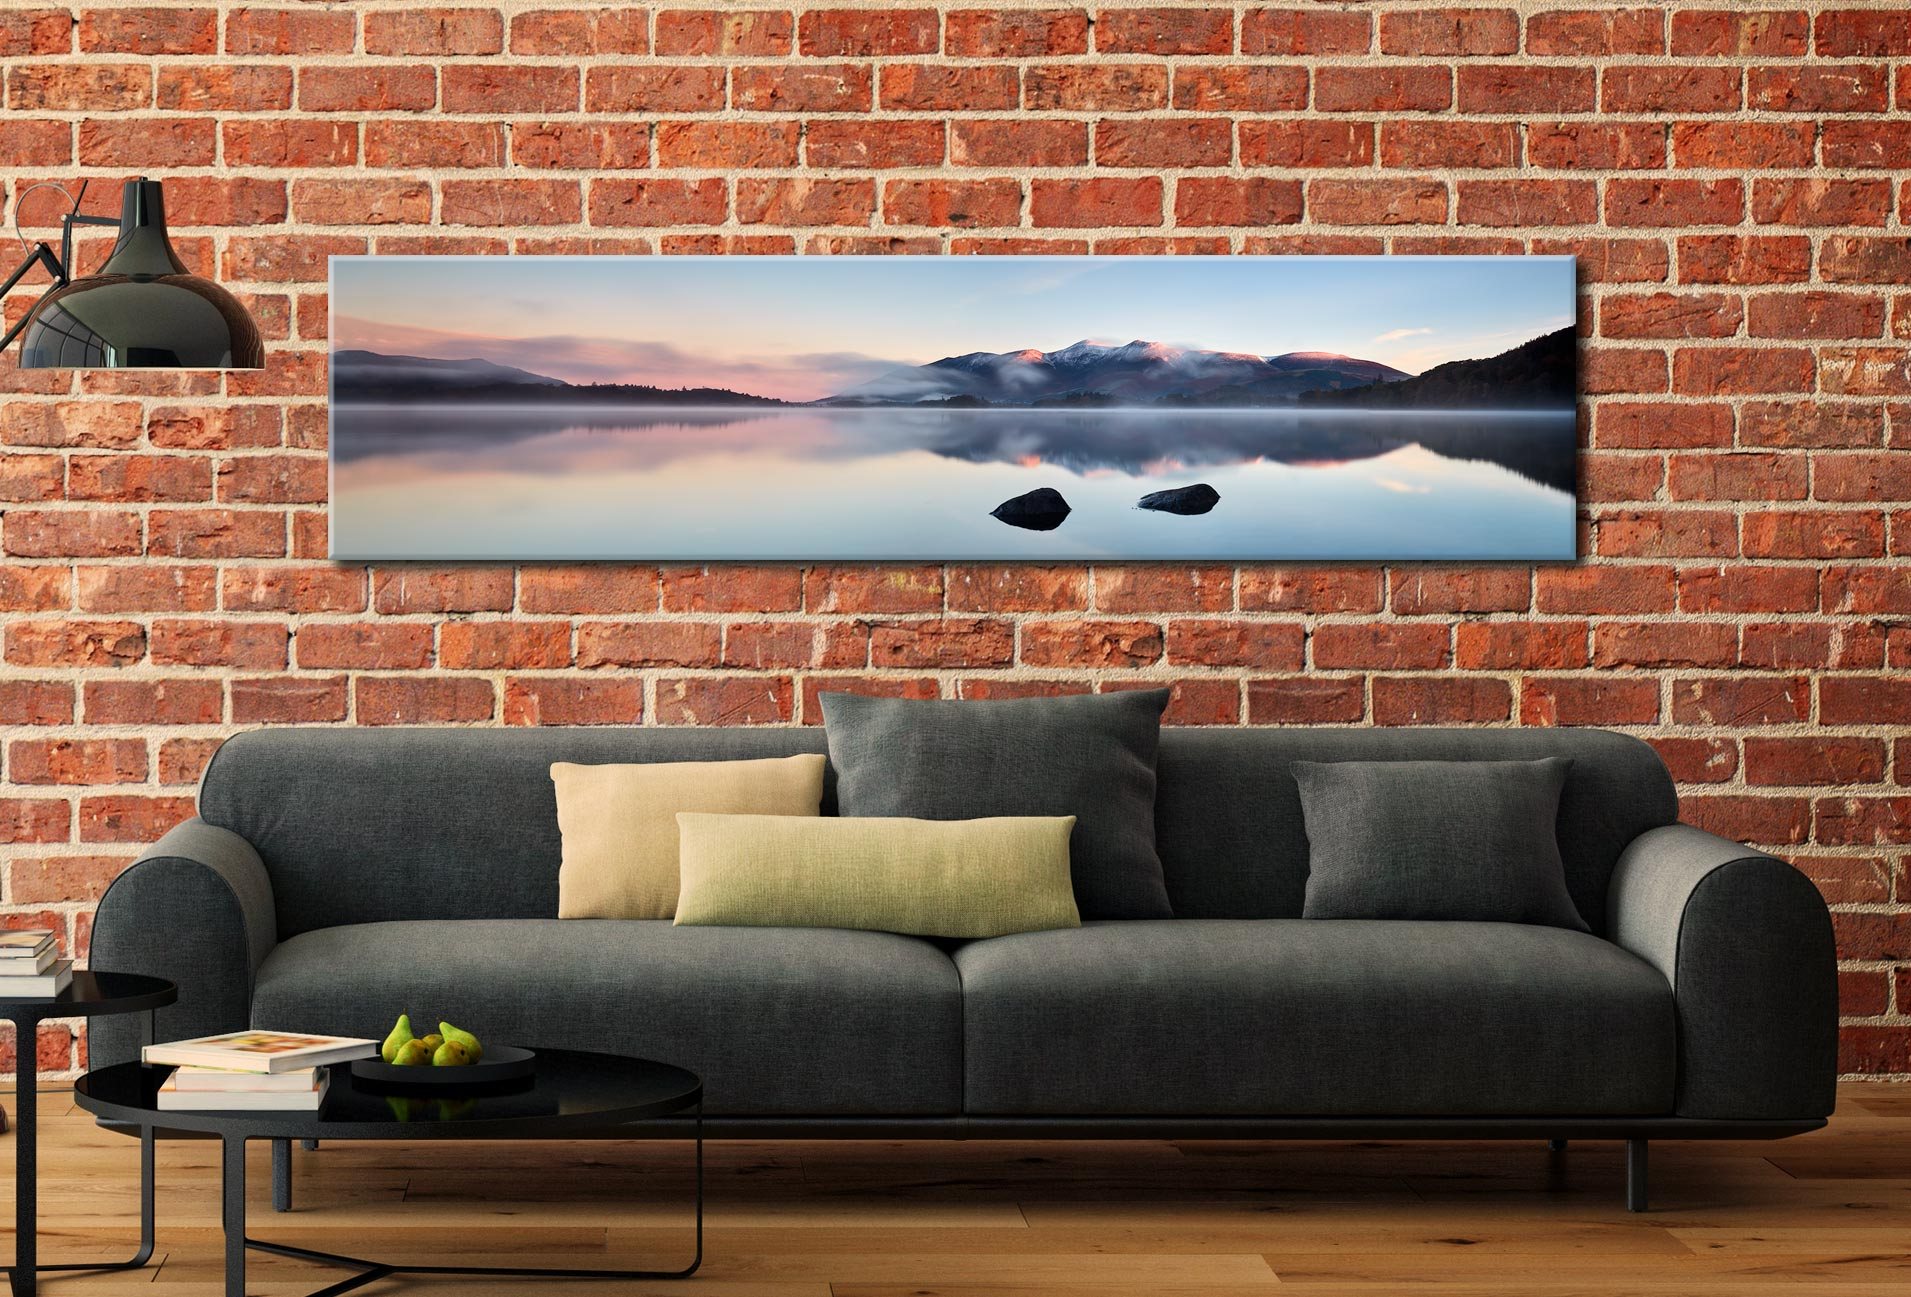 A New Day Dawns at Derwent Water - Lake District Canvas on Wall